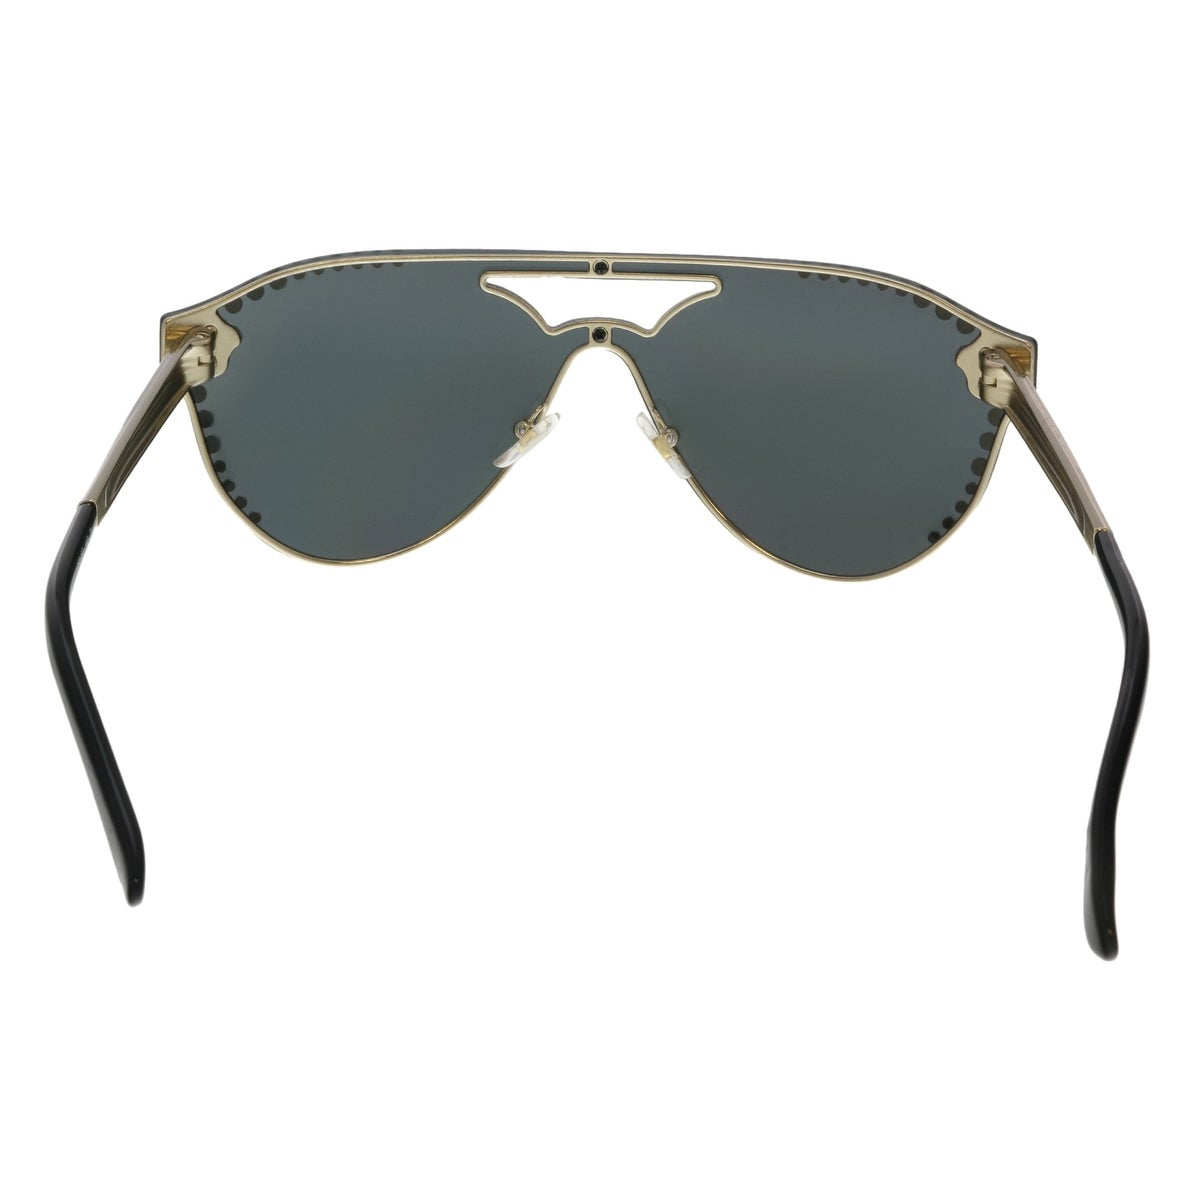 2f251edd8804 Shop Versace VE2161 125287 Pale Gold Aviator Sunglasses - No Size - Free  Shipping Today - Overstock - 25558350